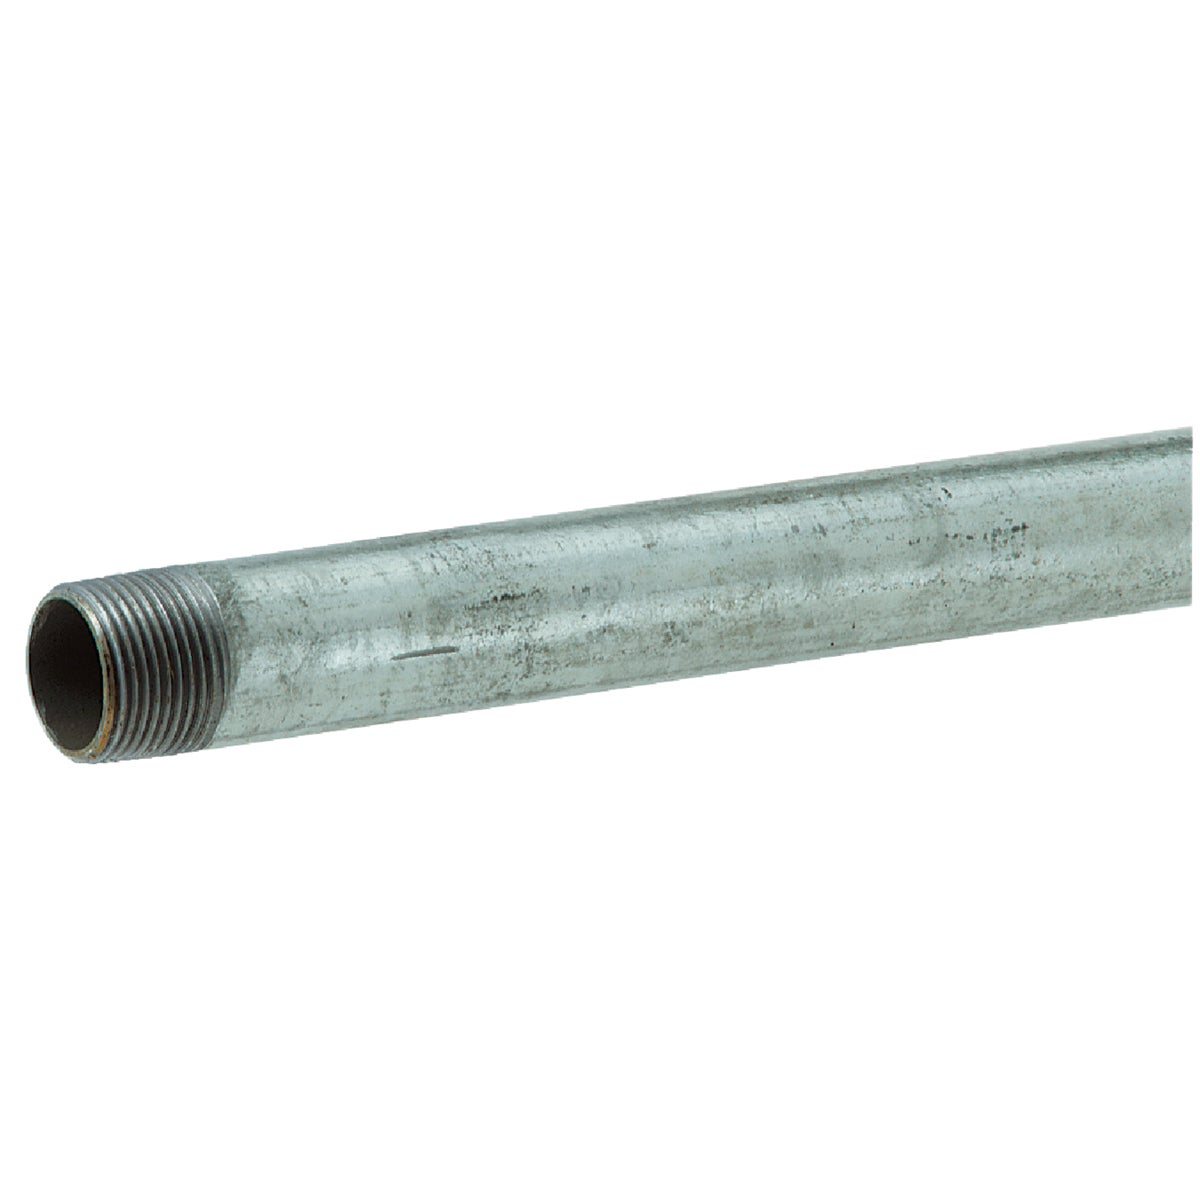 1/2X30 GALV RDI-CT PIPE - 1/2X30 by Southland Pipe Nippl